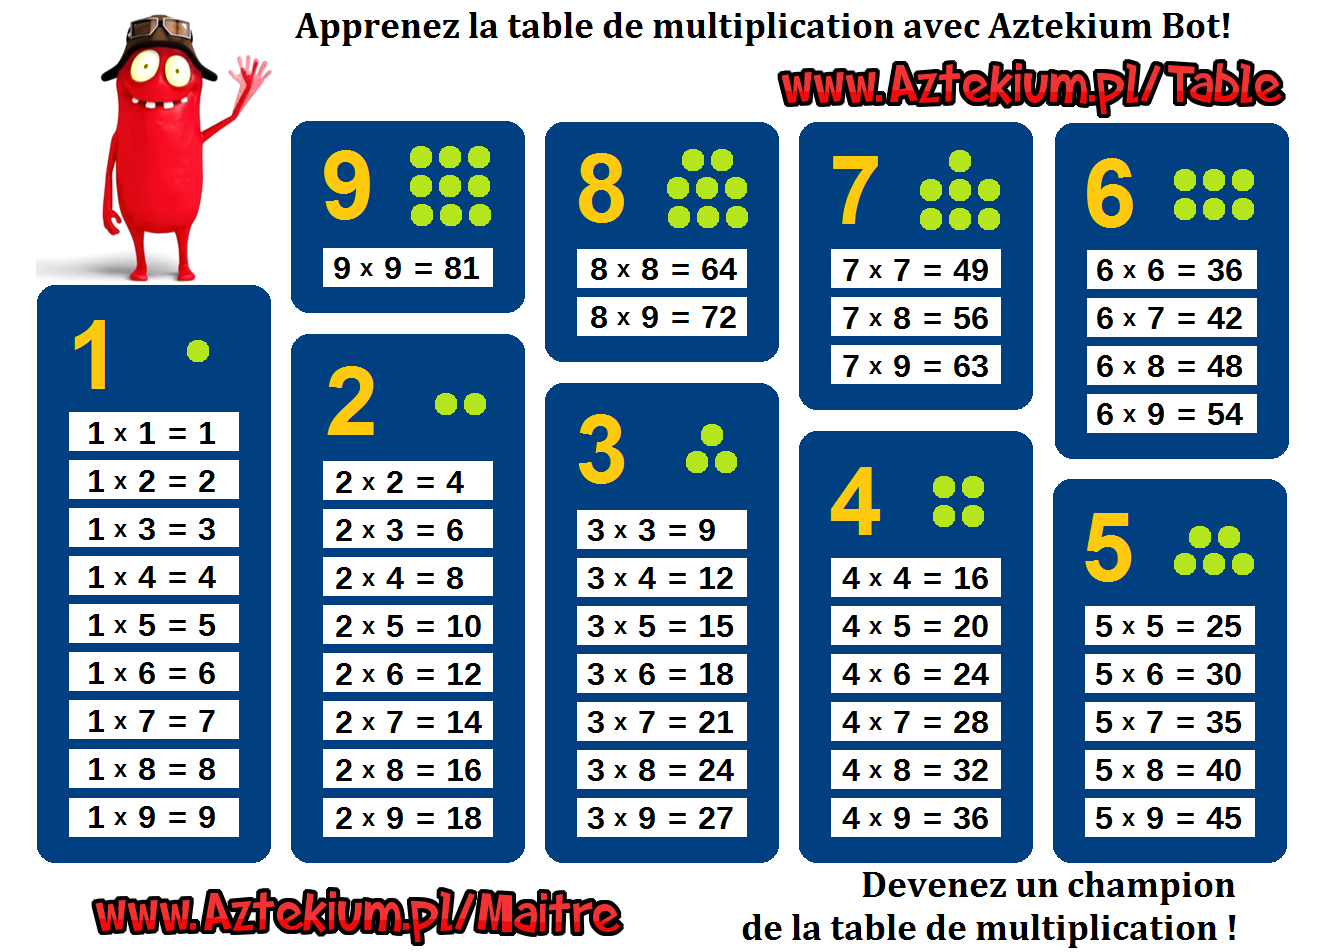 Table De Multiplication De 7 Table De Multiplication A Imprimer De 1 A 10 Education